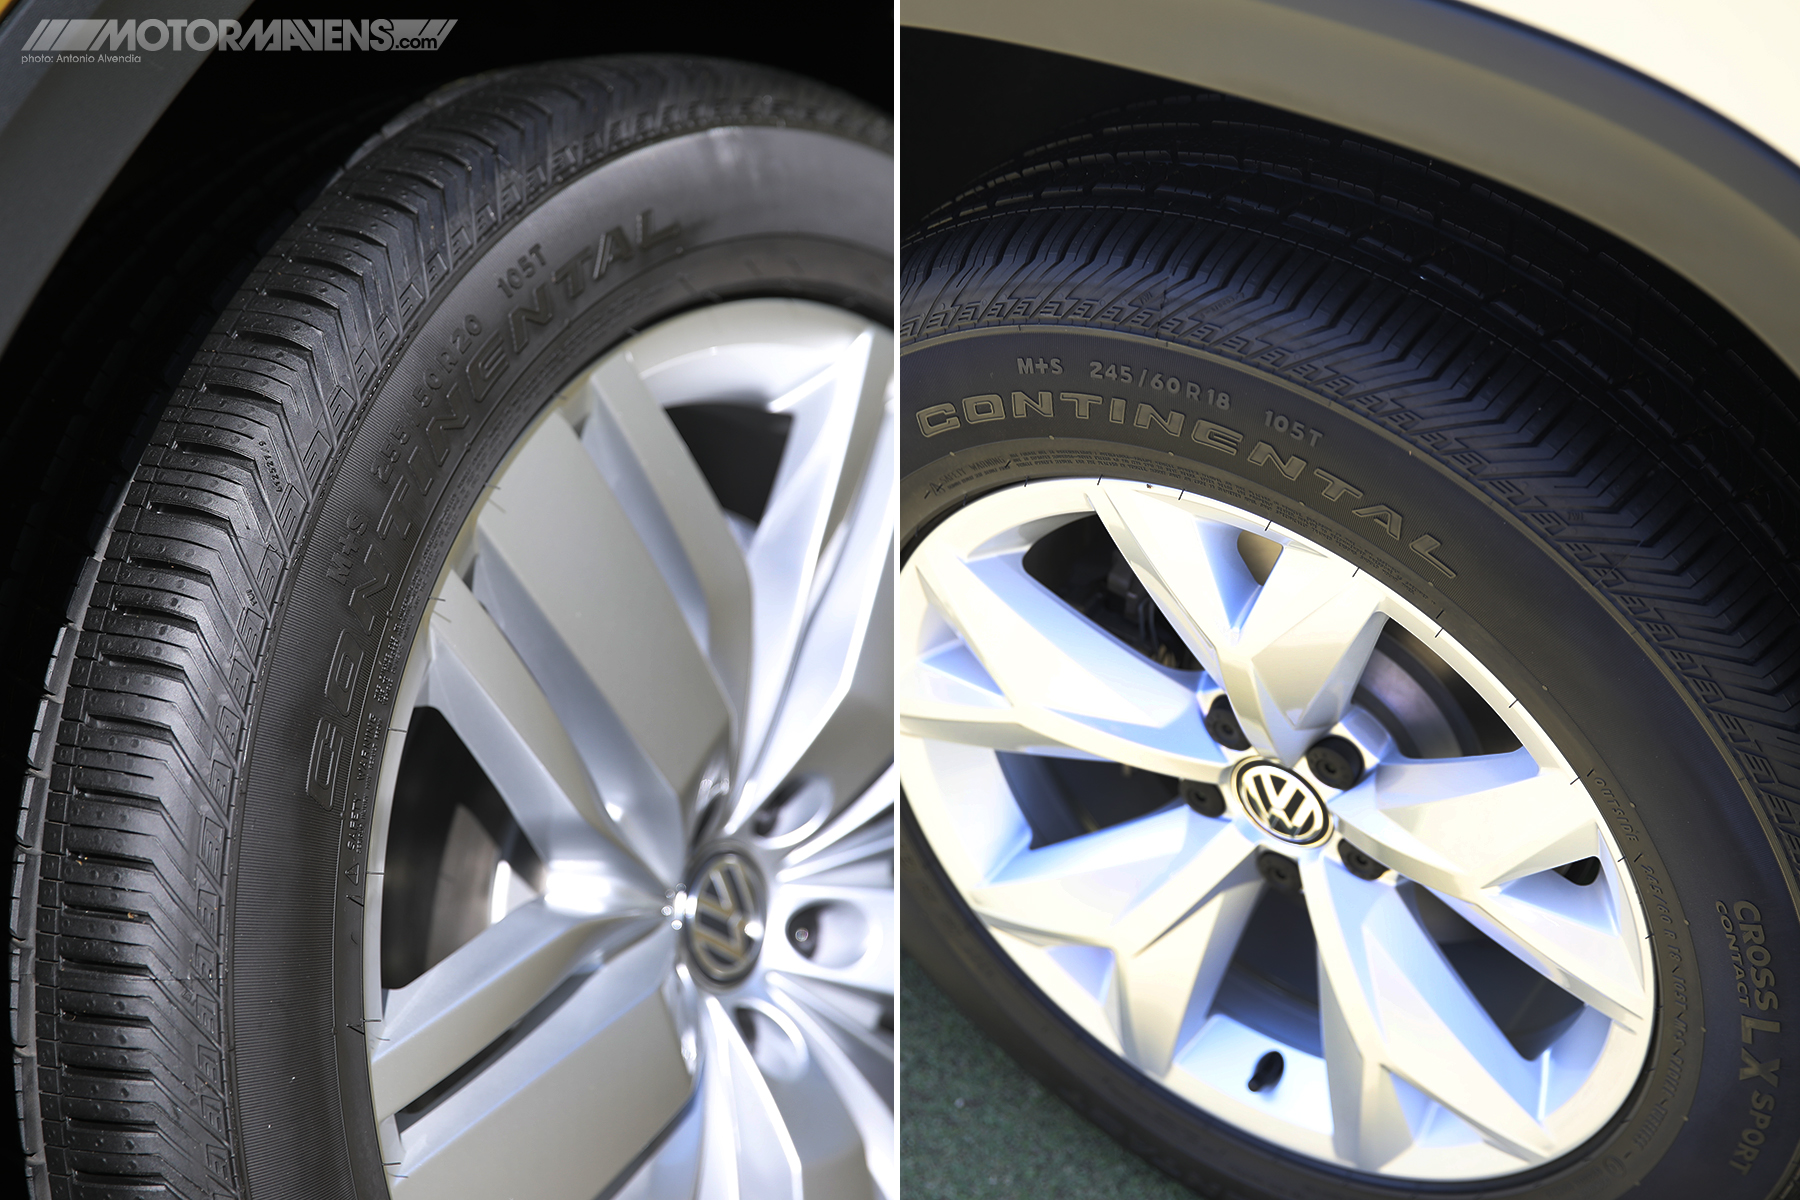 VW Atlas wheel and tire options 20 inch 18 inch Continental Tires